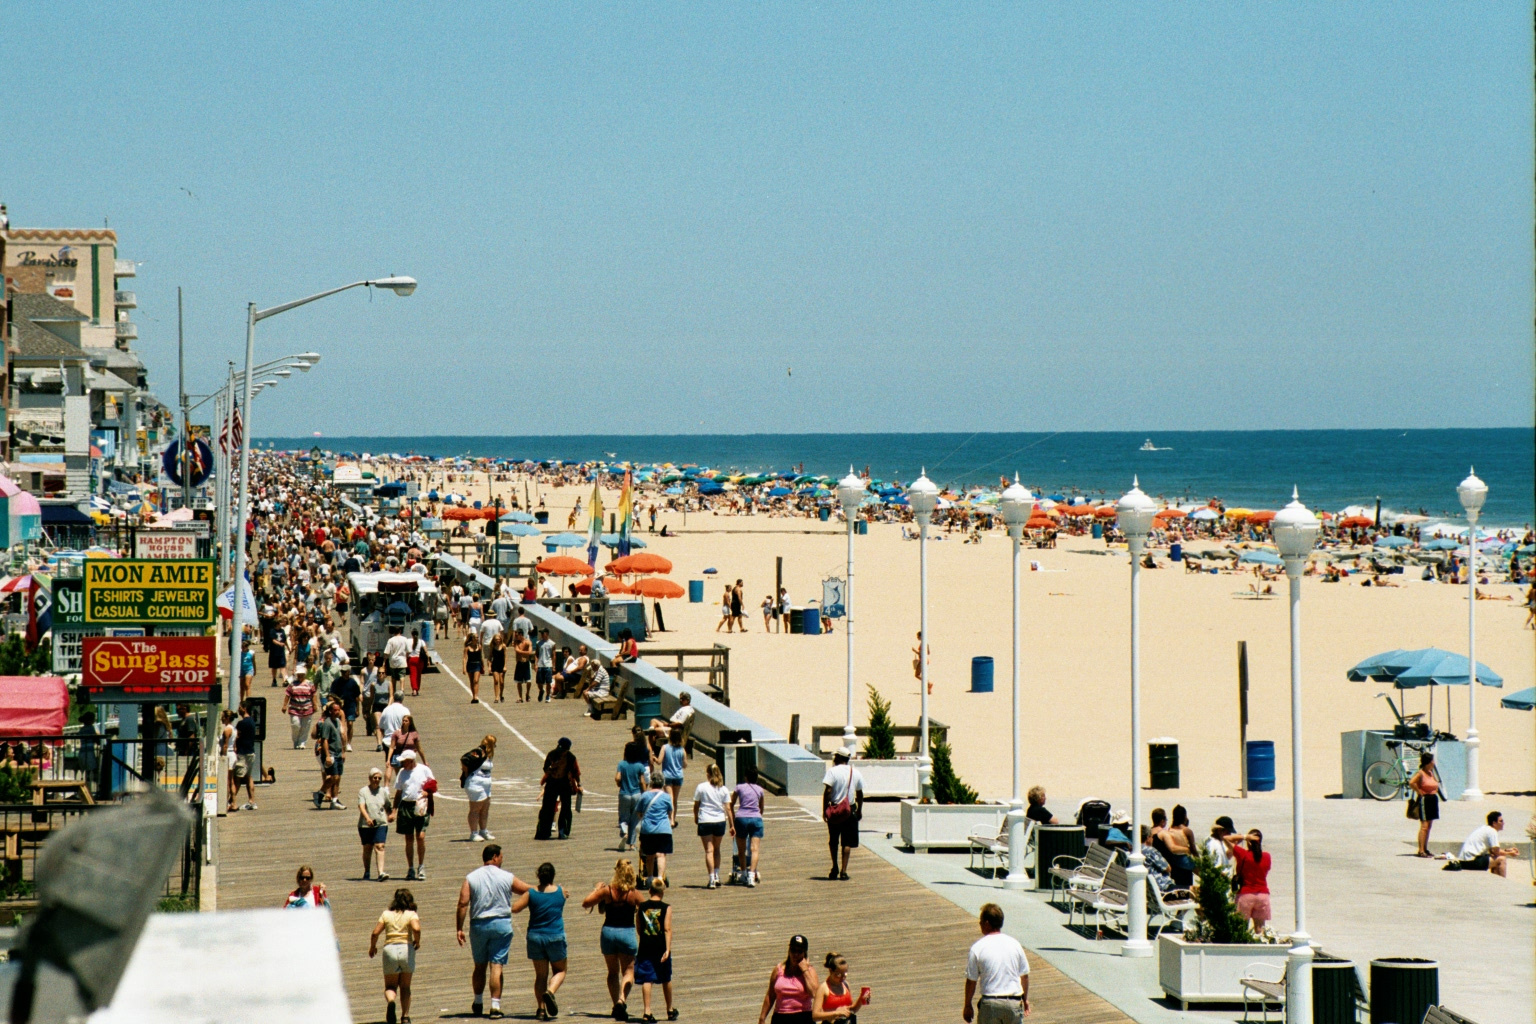 PHOTO CREDIT:  Above photo of Ocean City's boardwalk area is from here .